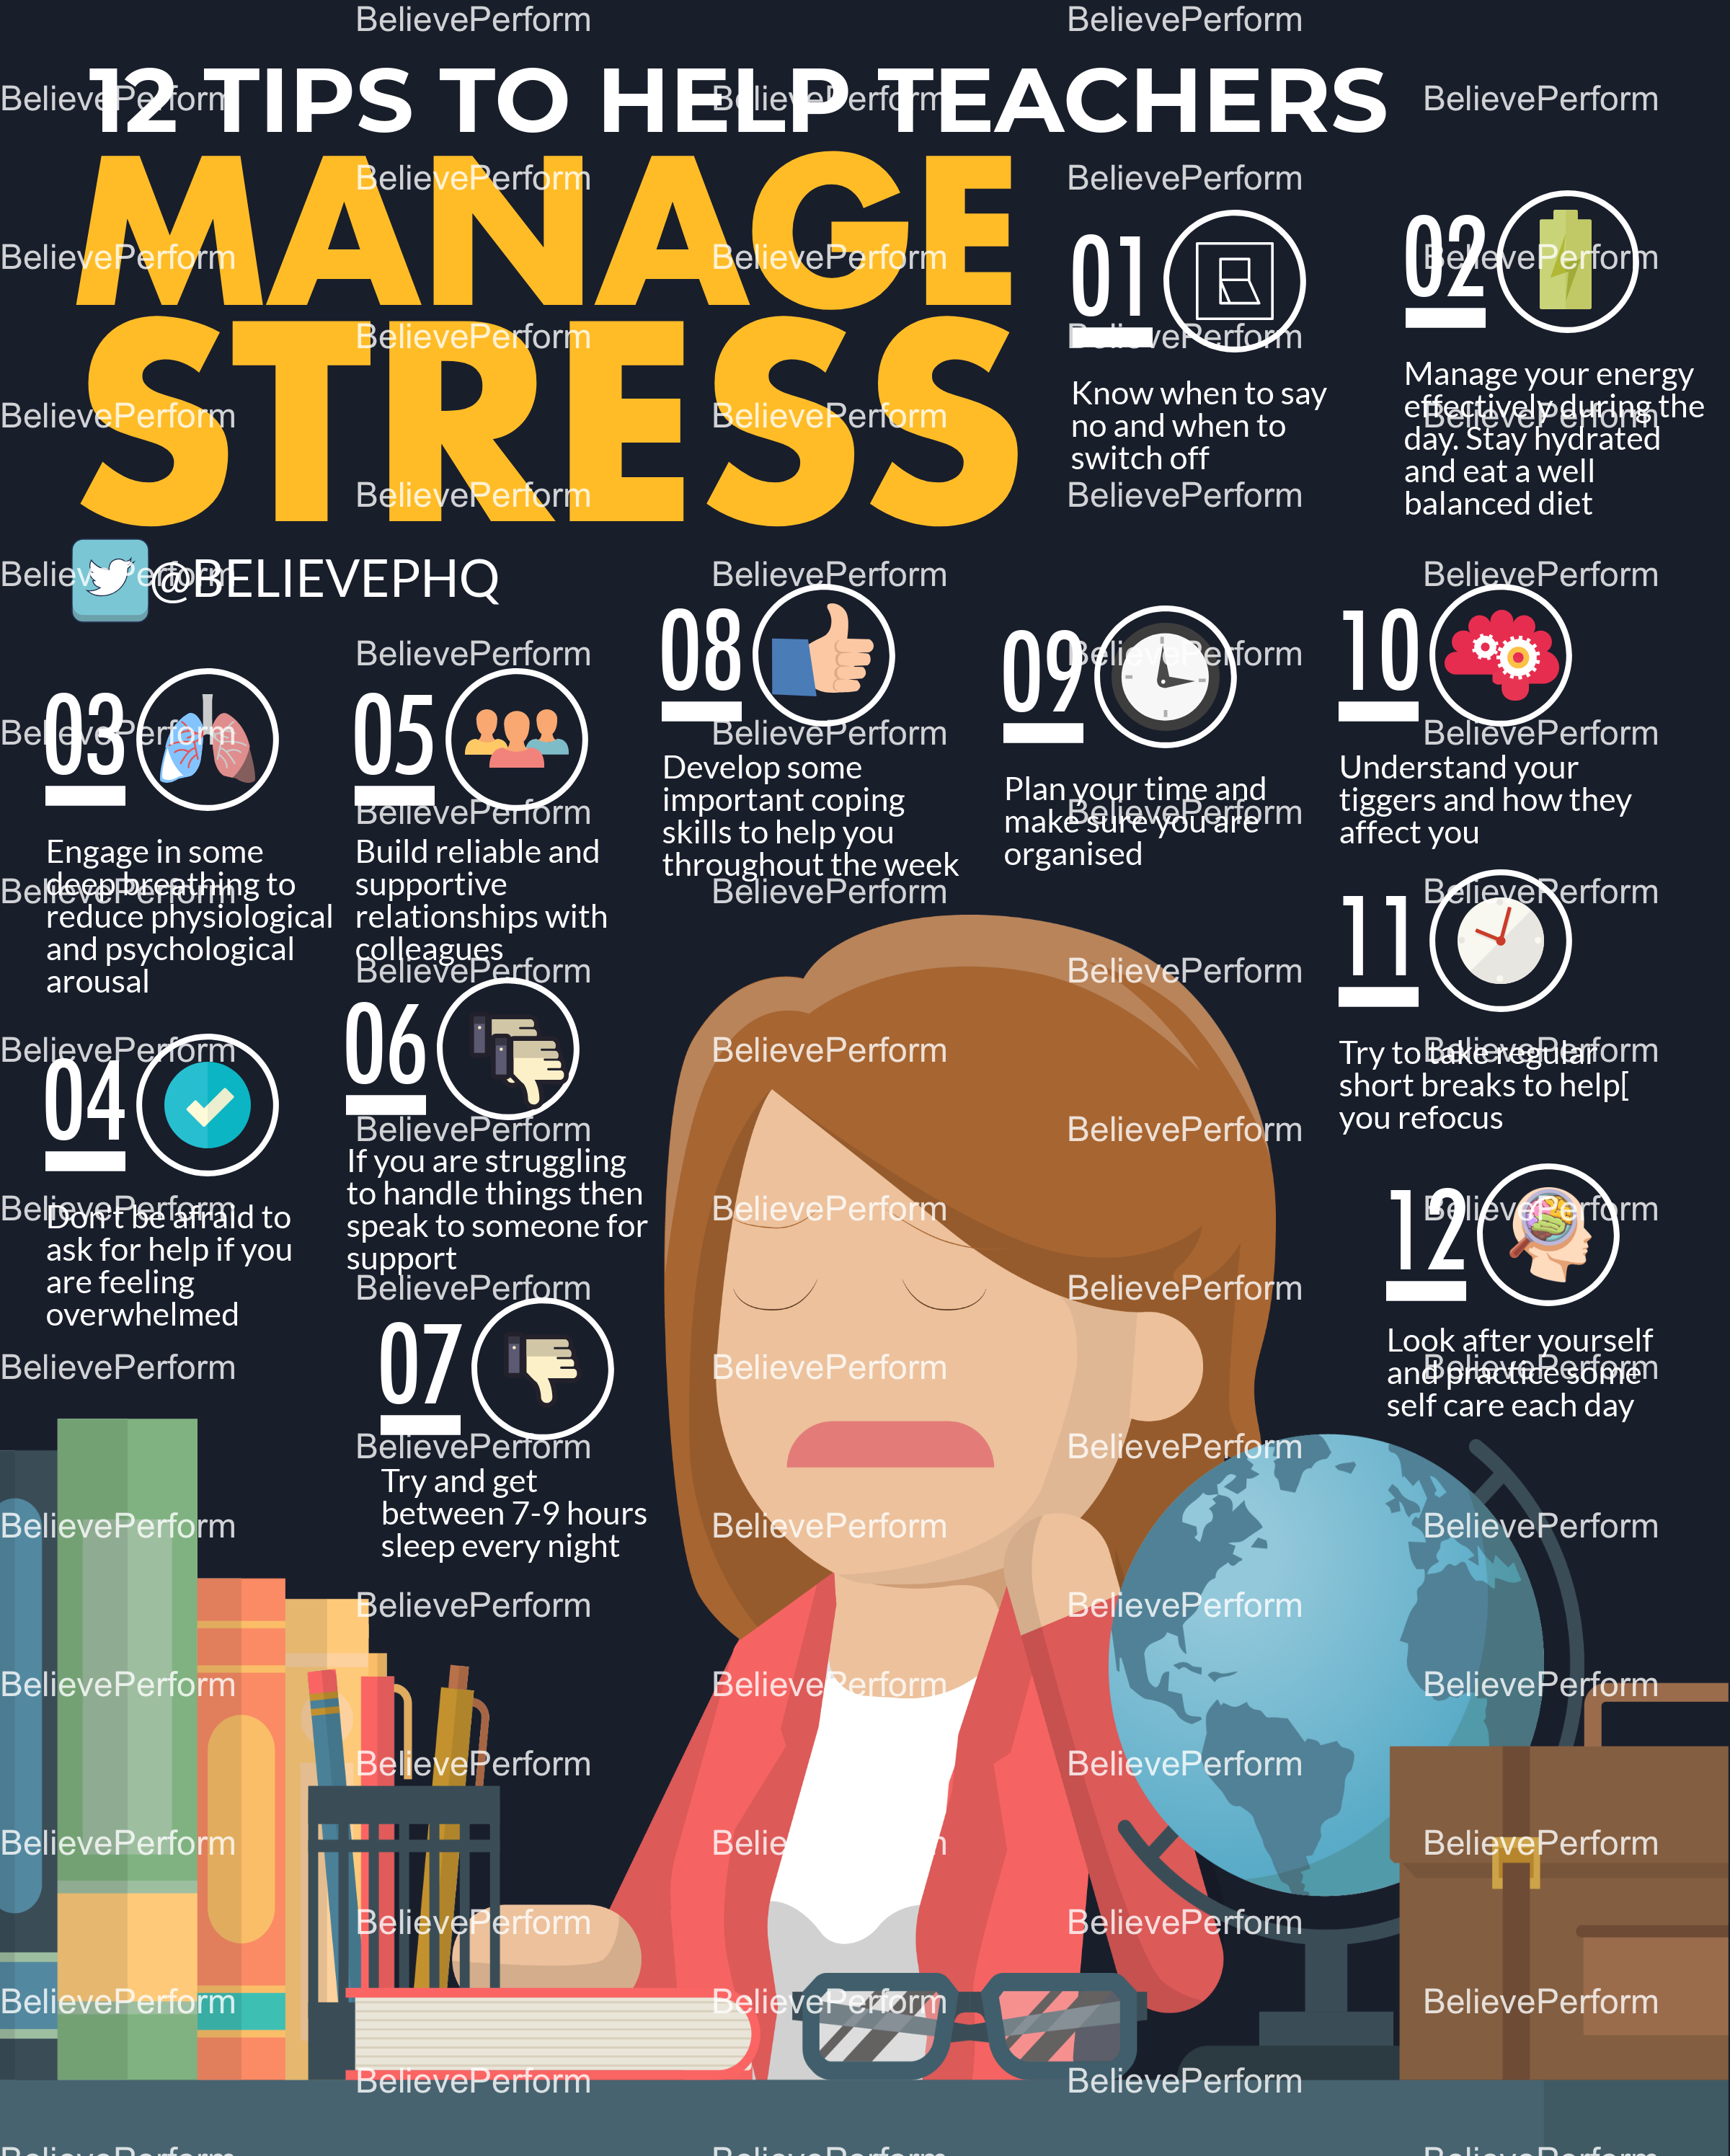 12 tips to help teachers manage stress